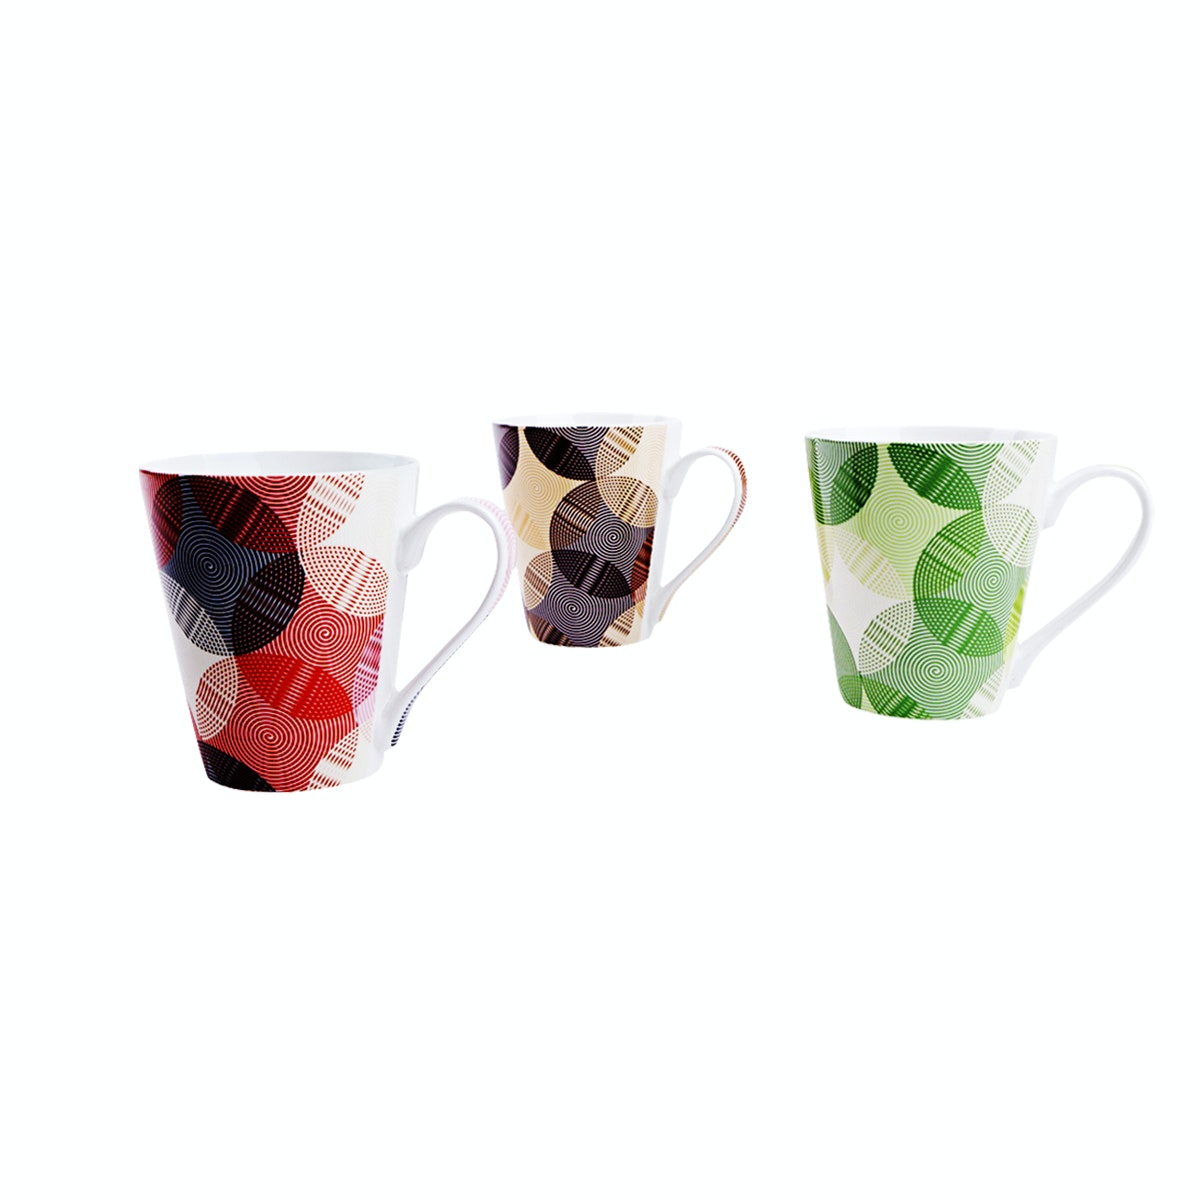 Nakami 3Pcs New Bone Mug Set